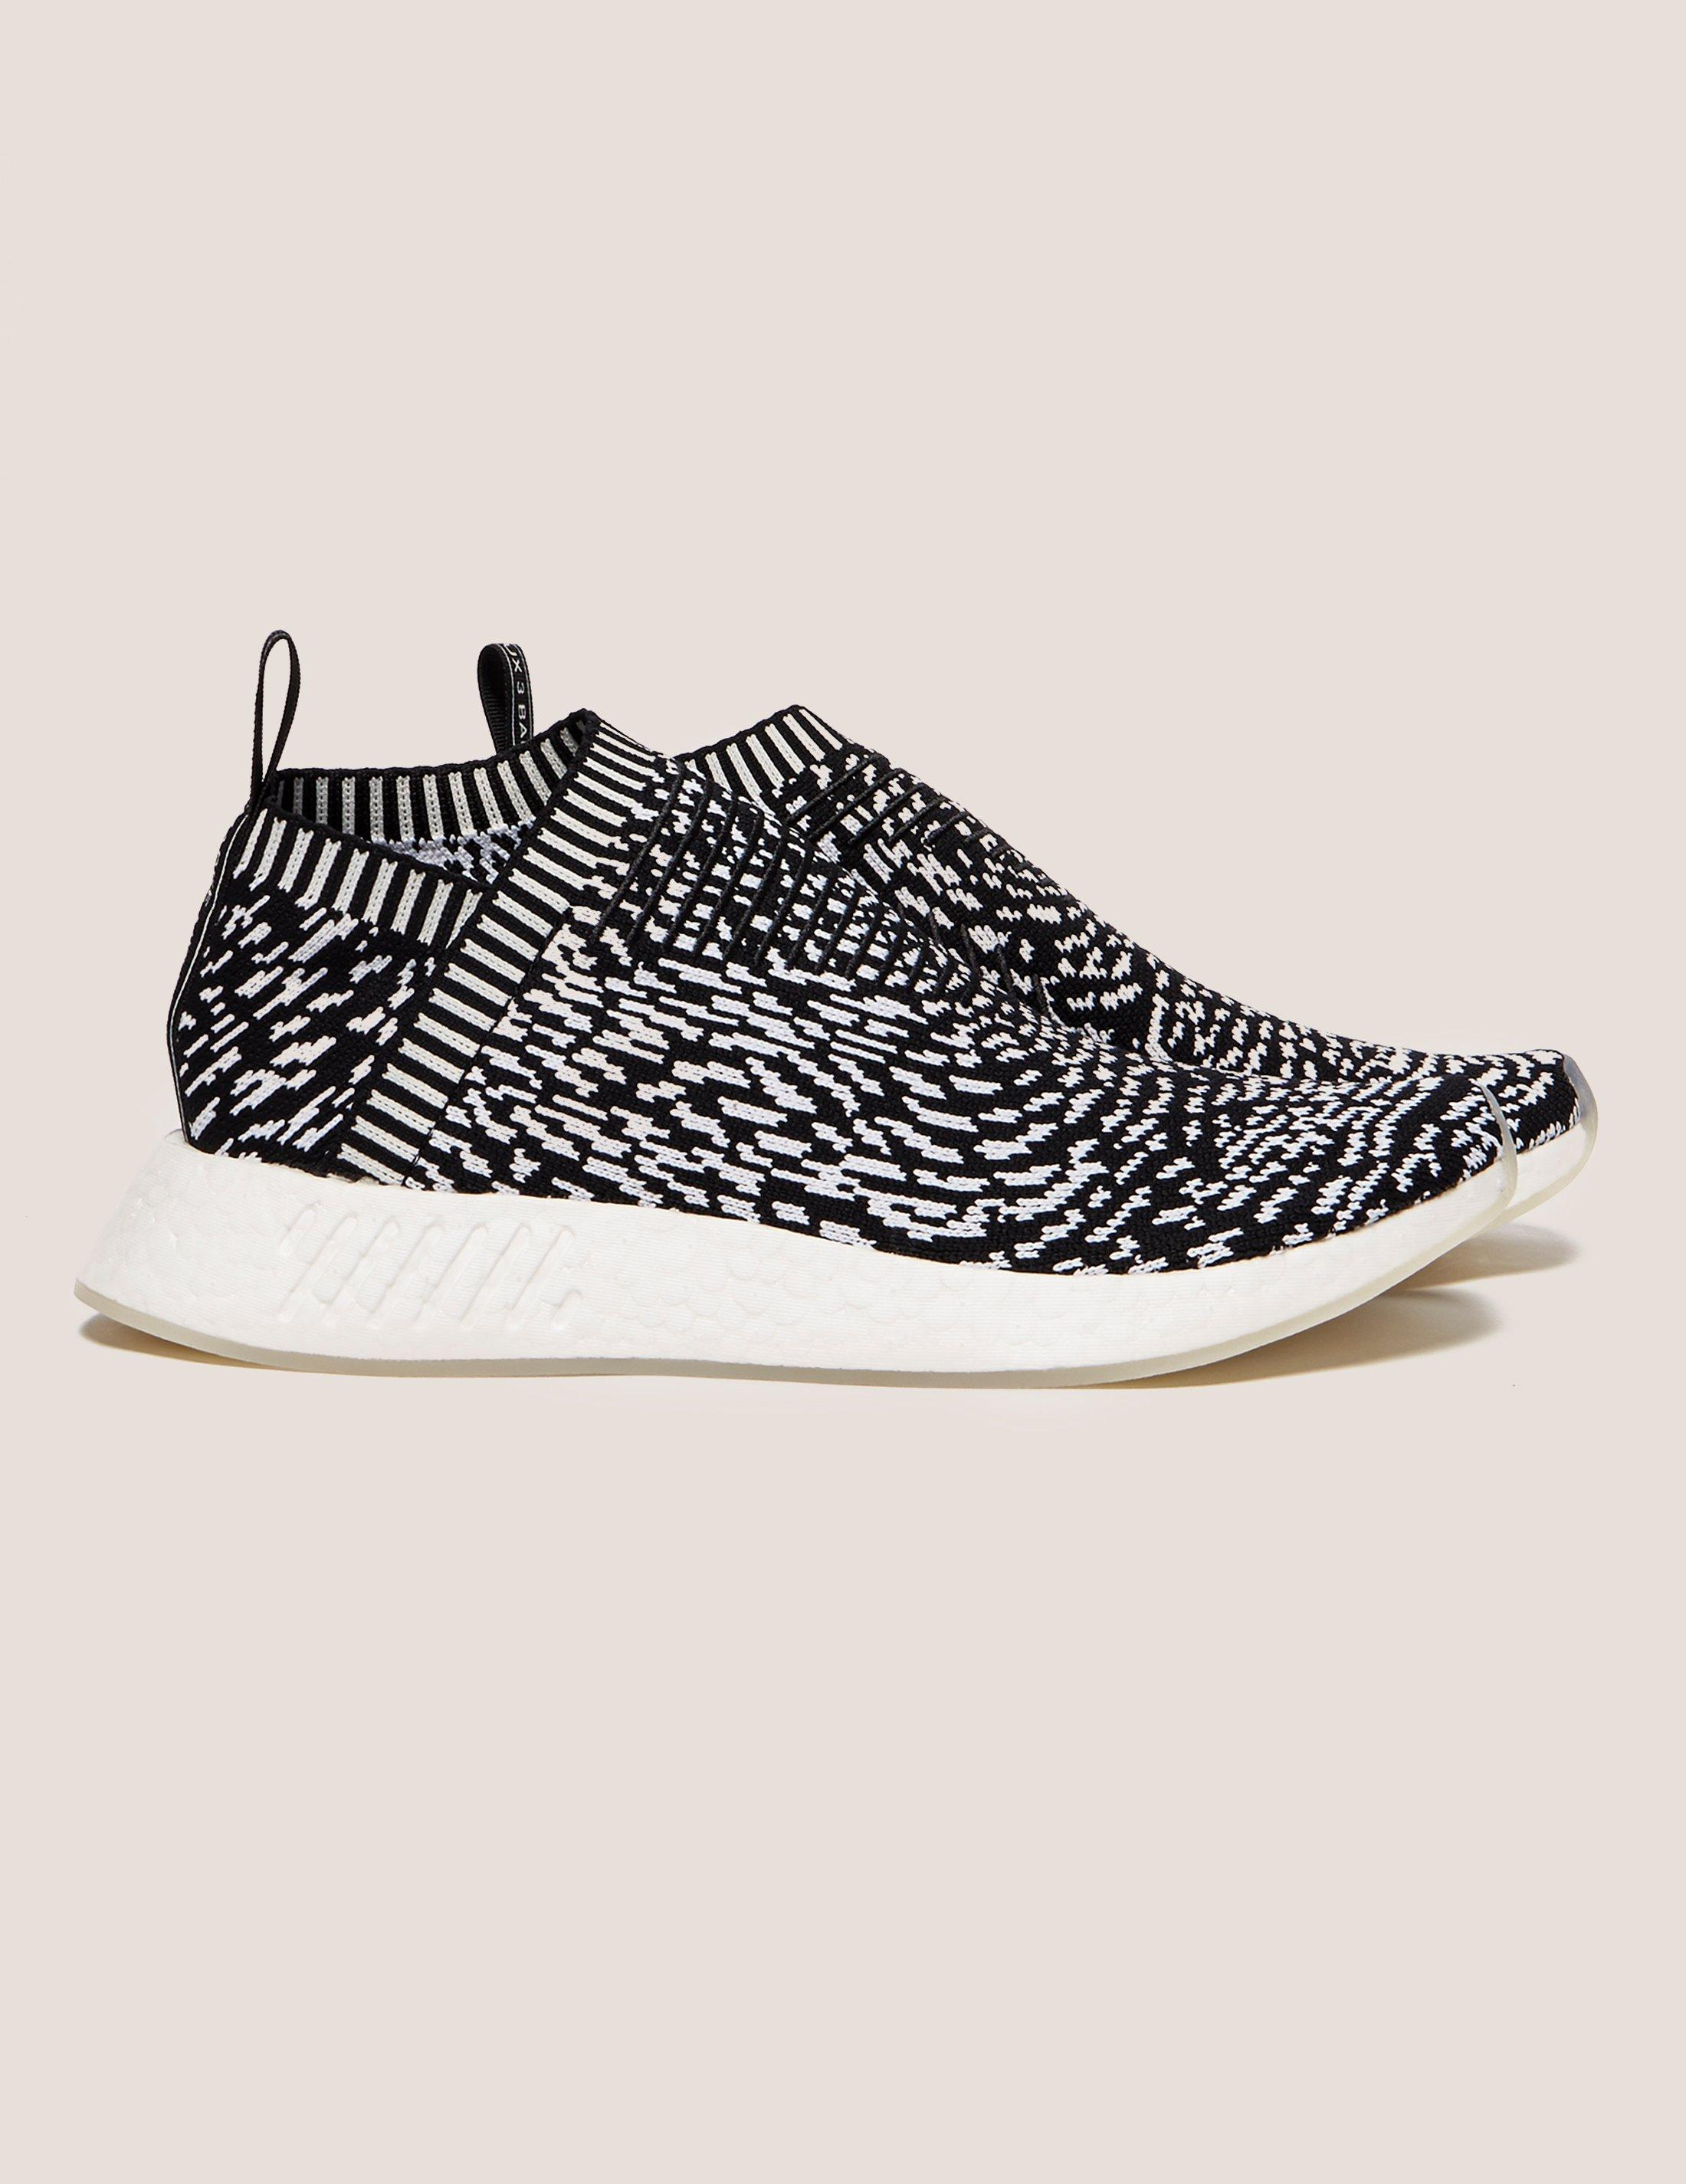 c3bfcf61d ... cheapest shop the latest menswear gear at scotts from fred perry pretty  green lacoste paul shark australia nuevas adidas nmd r1 ...